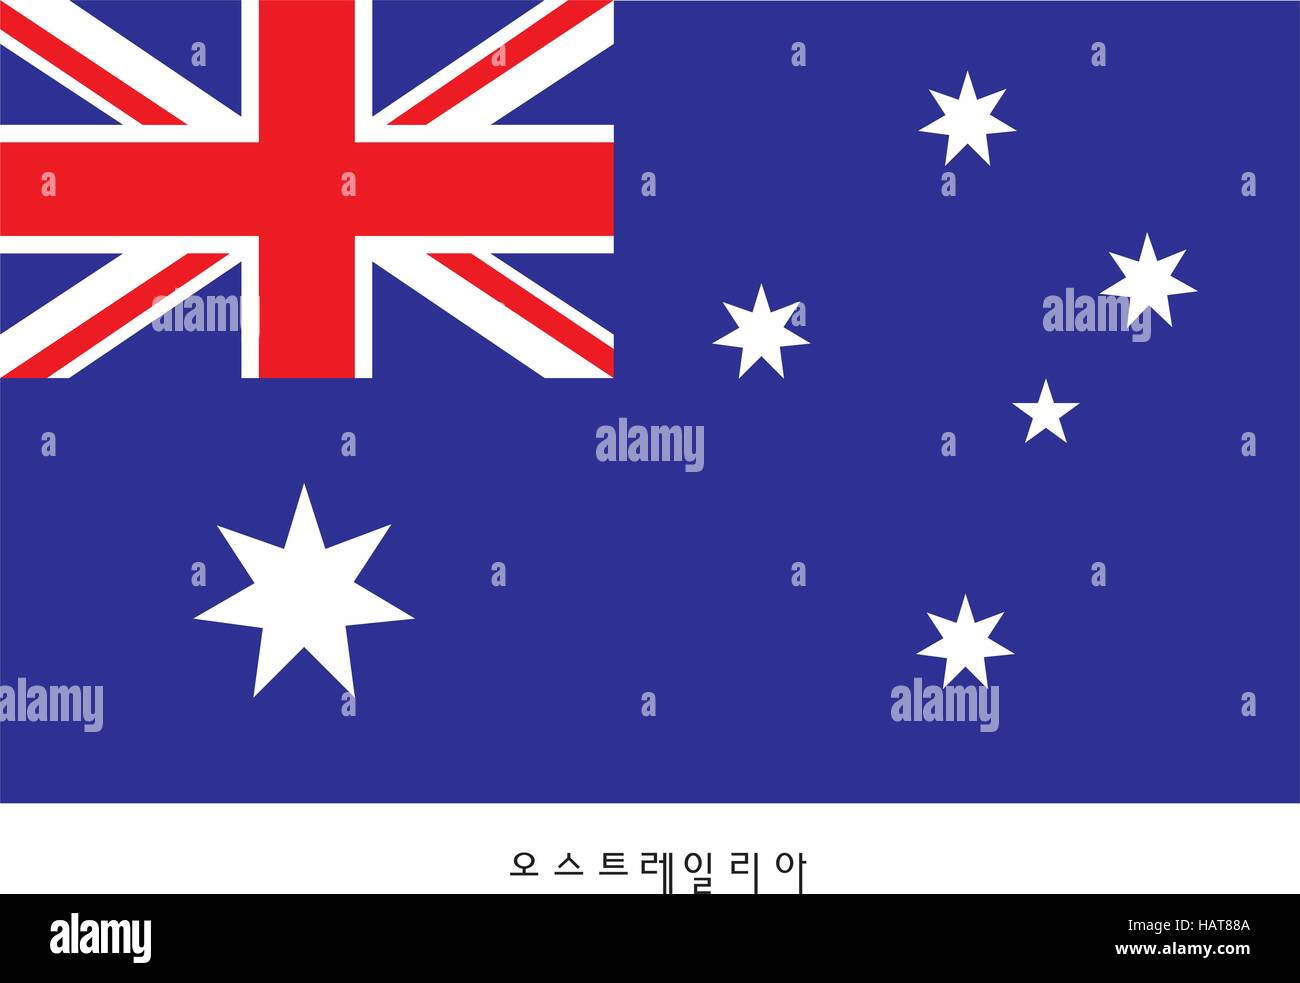 National Symbols Flag Australia Stock Vector Images Alamy